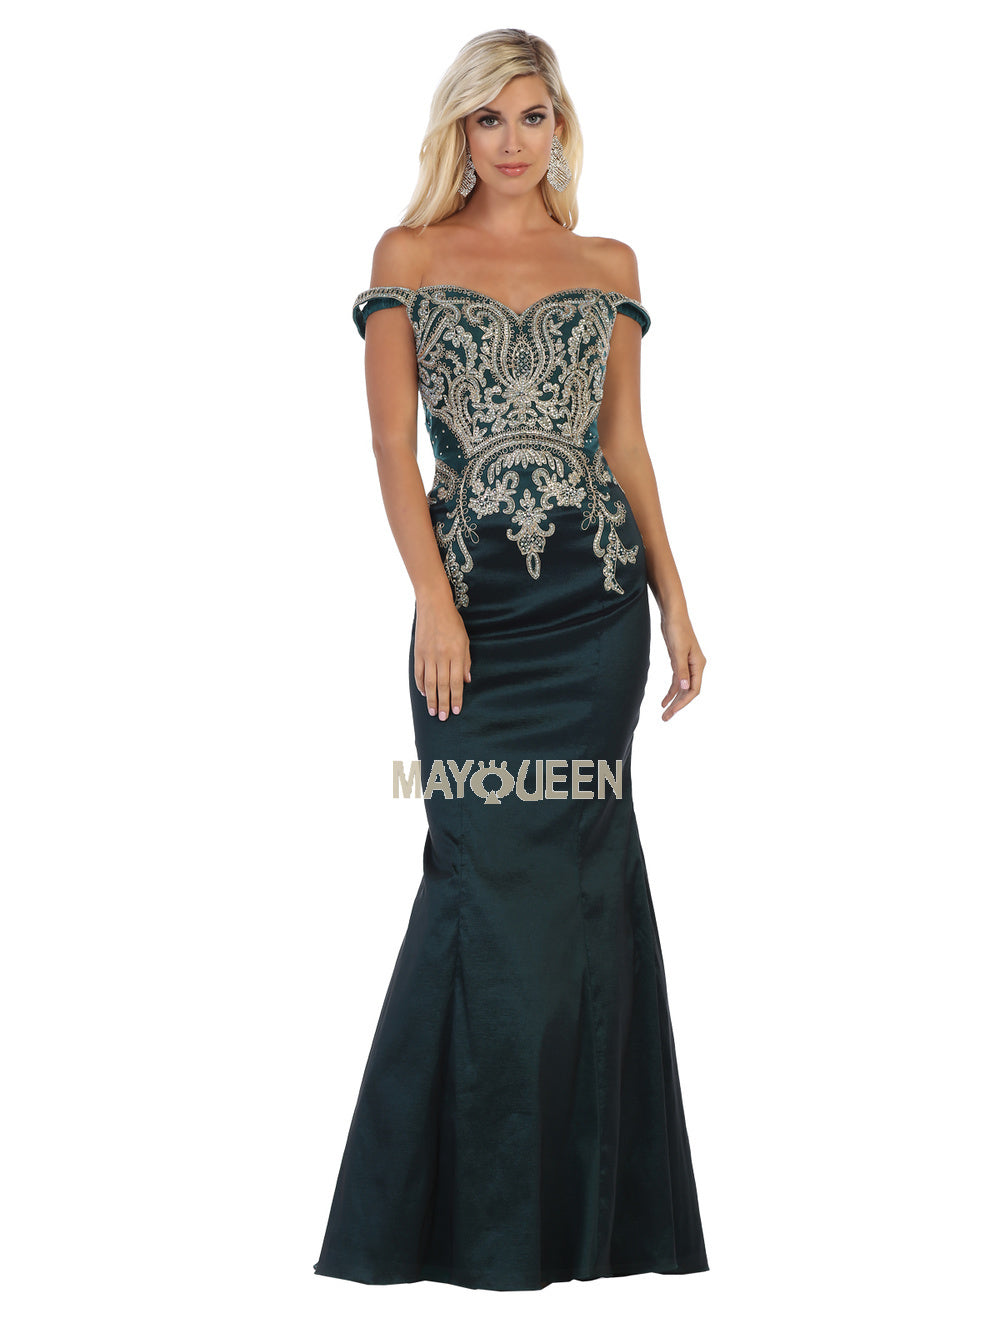 MQ 1609 - Embellished Off-the-Shoulder Mermaid with Sweetheart Neck & Train - Diggz Prom